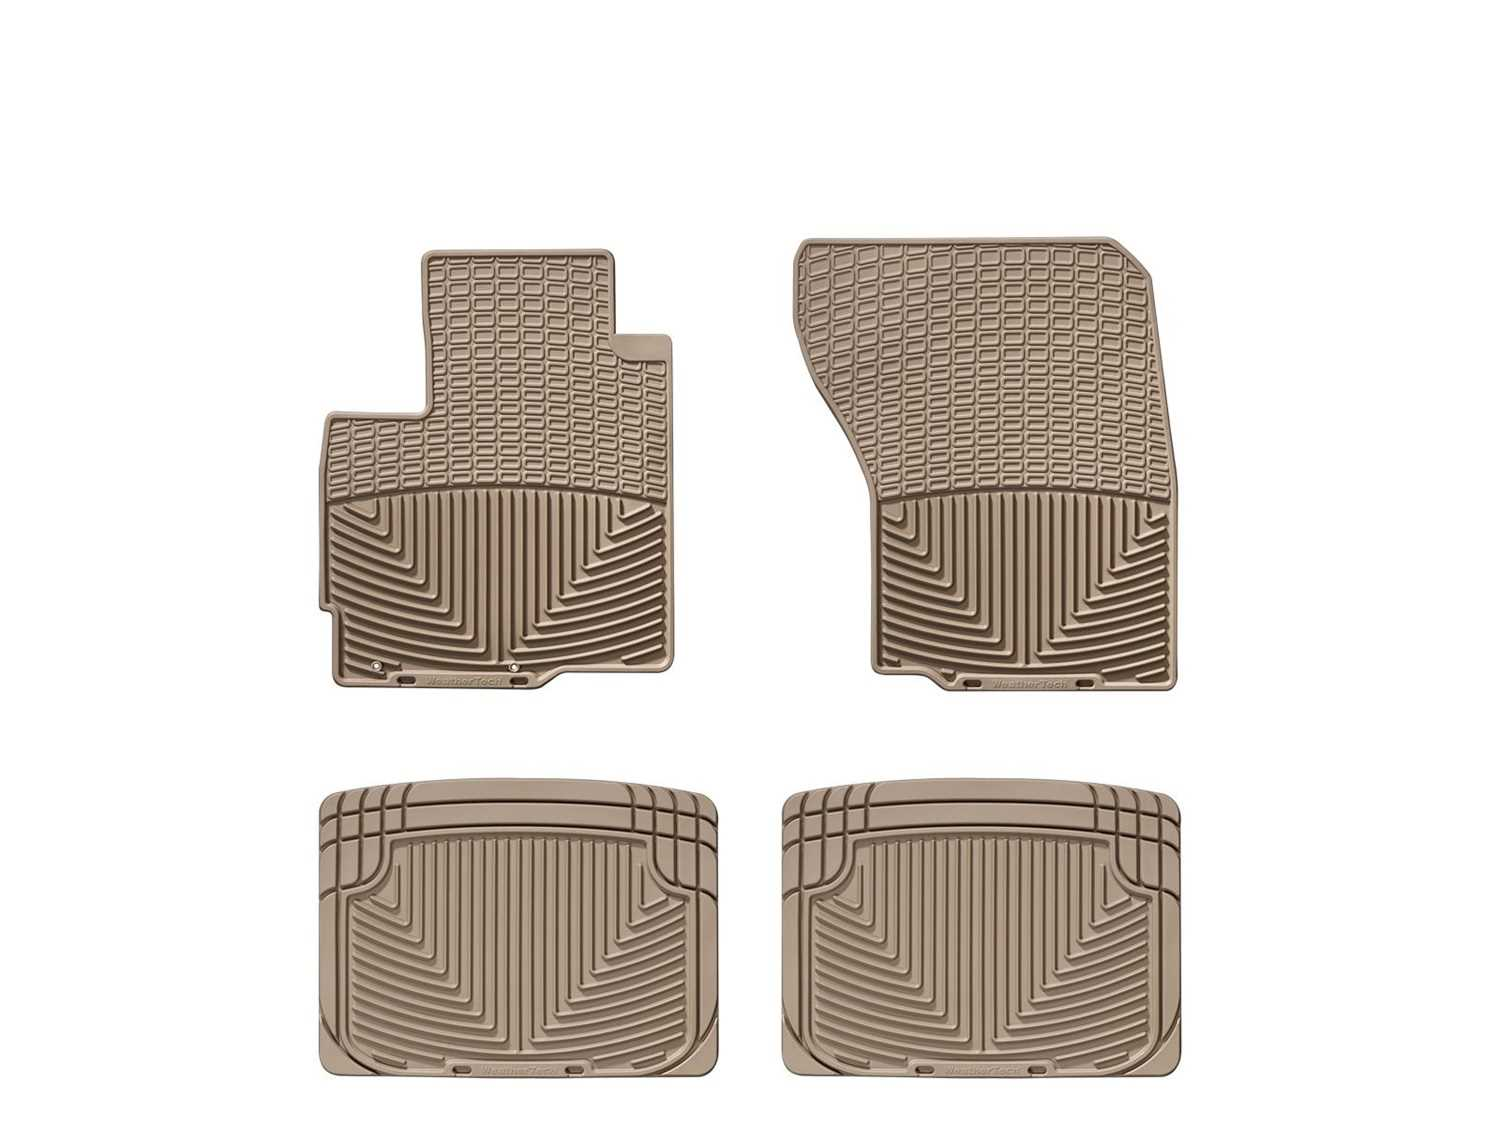 W83TN-W20TN WeatherTech All Weather Floor Mats